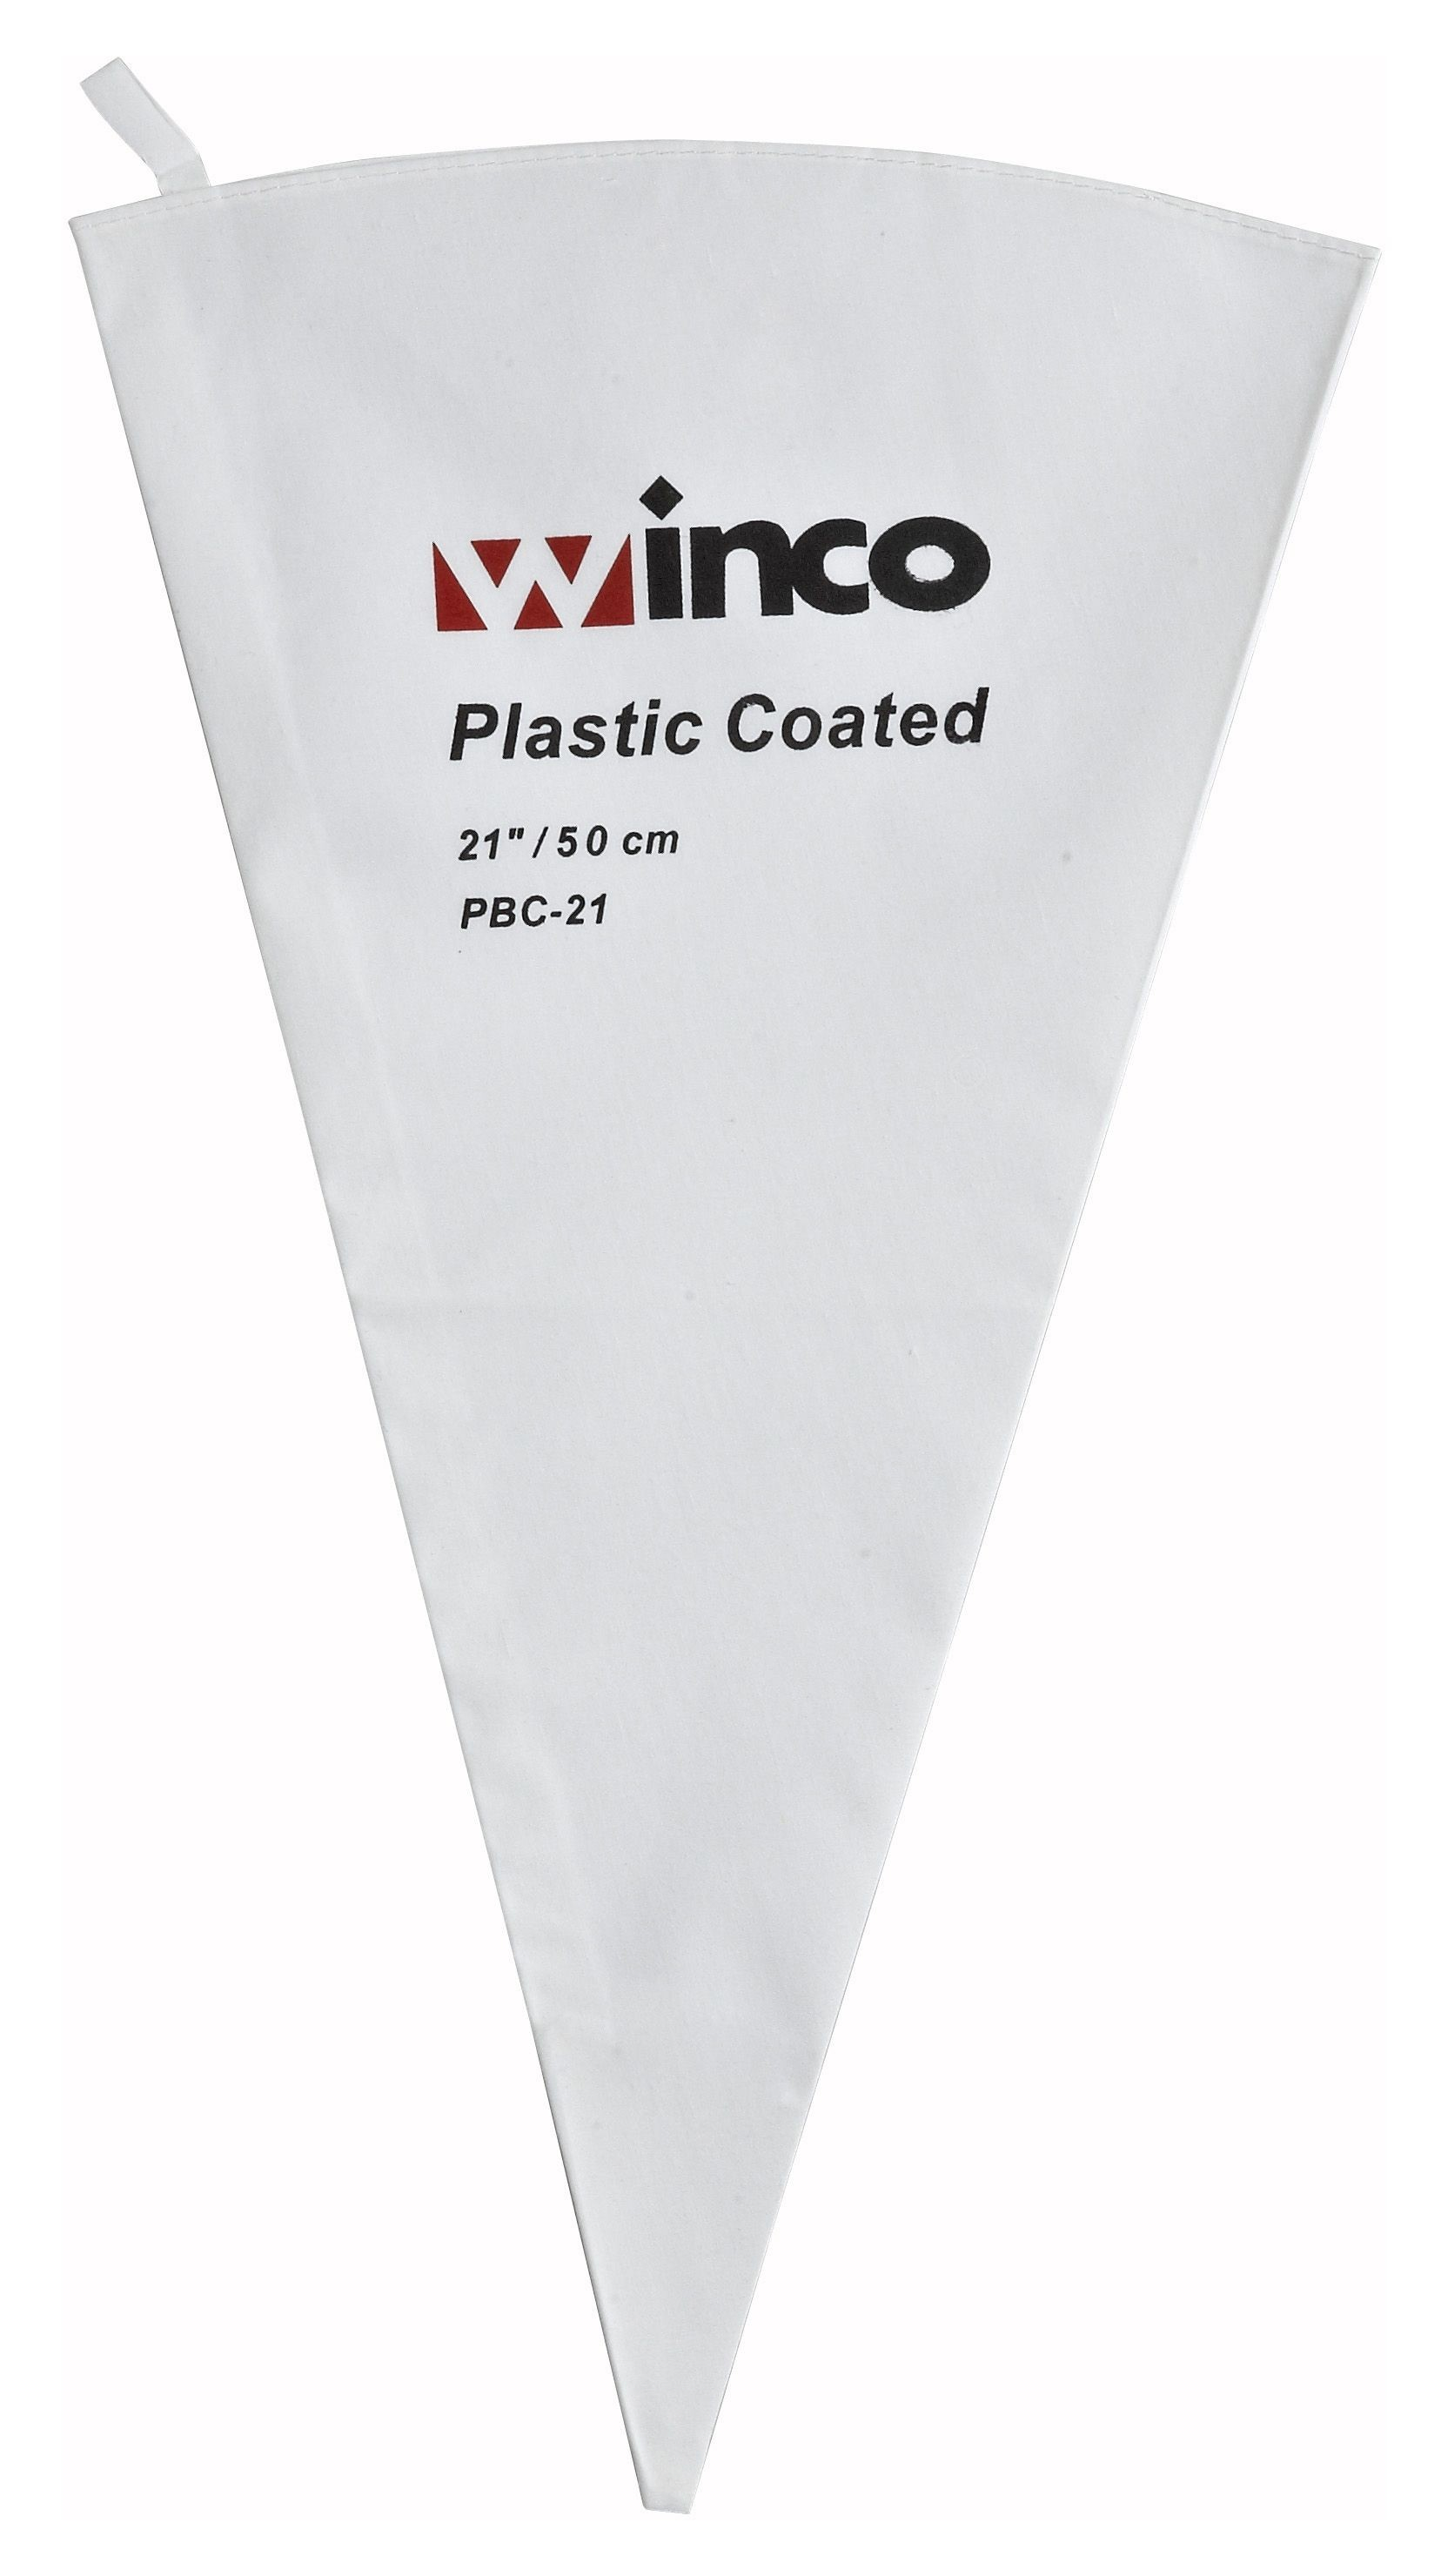 Winco PBC-21 Cotton Pastry Bag with Inner Plastic Coating, 21""